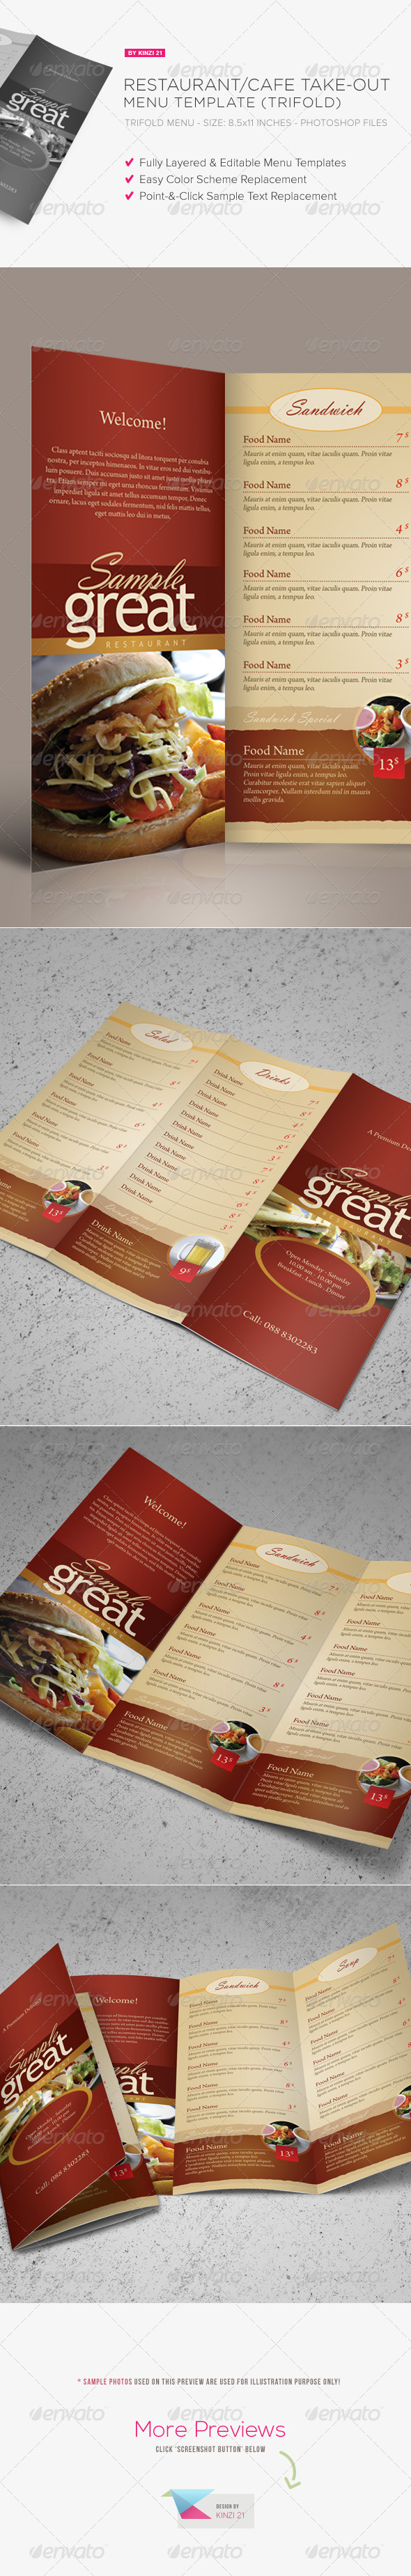 Restaurant / Cafe Take-out Menu Template - Food Menus Print Templates